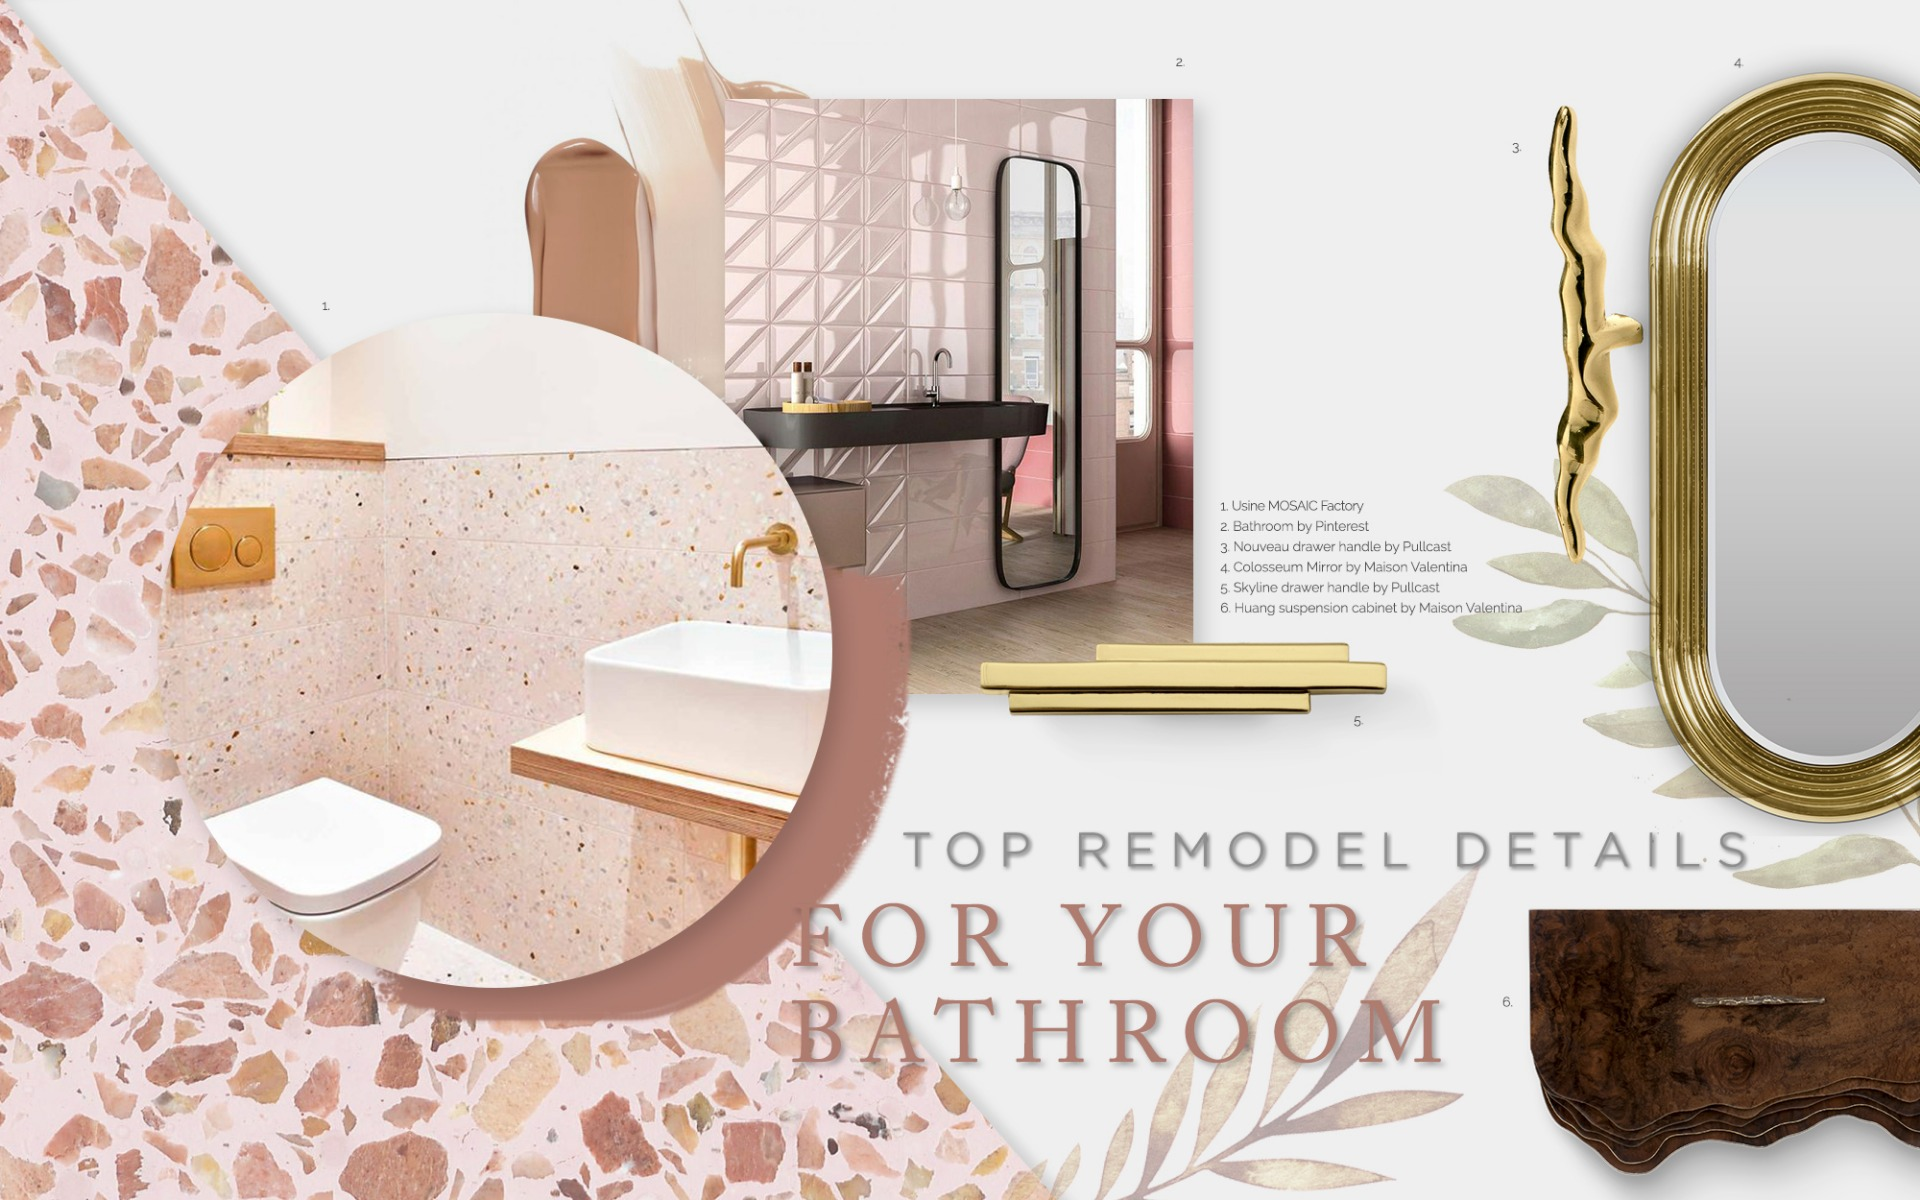 Bathroom Remodel Trends that Focus on Details bathroom remodel trends Bathroom Remodel Trends that Focus on Details moodboard  Front Page moodboard